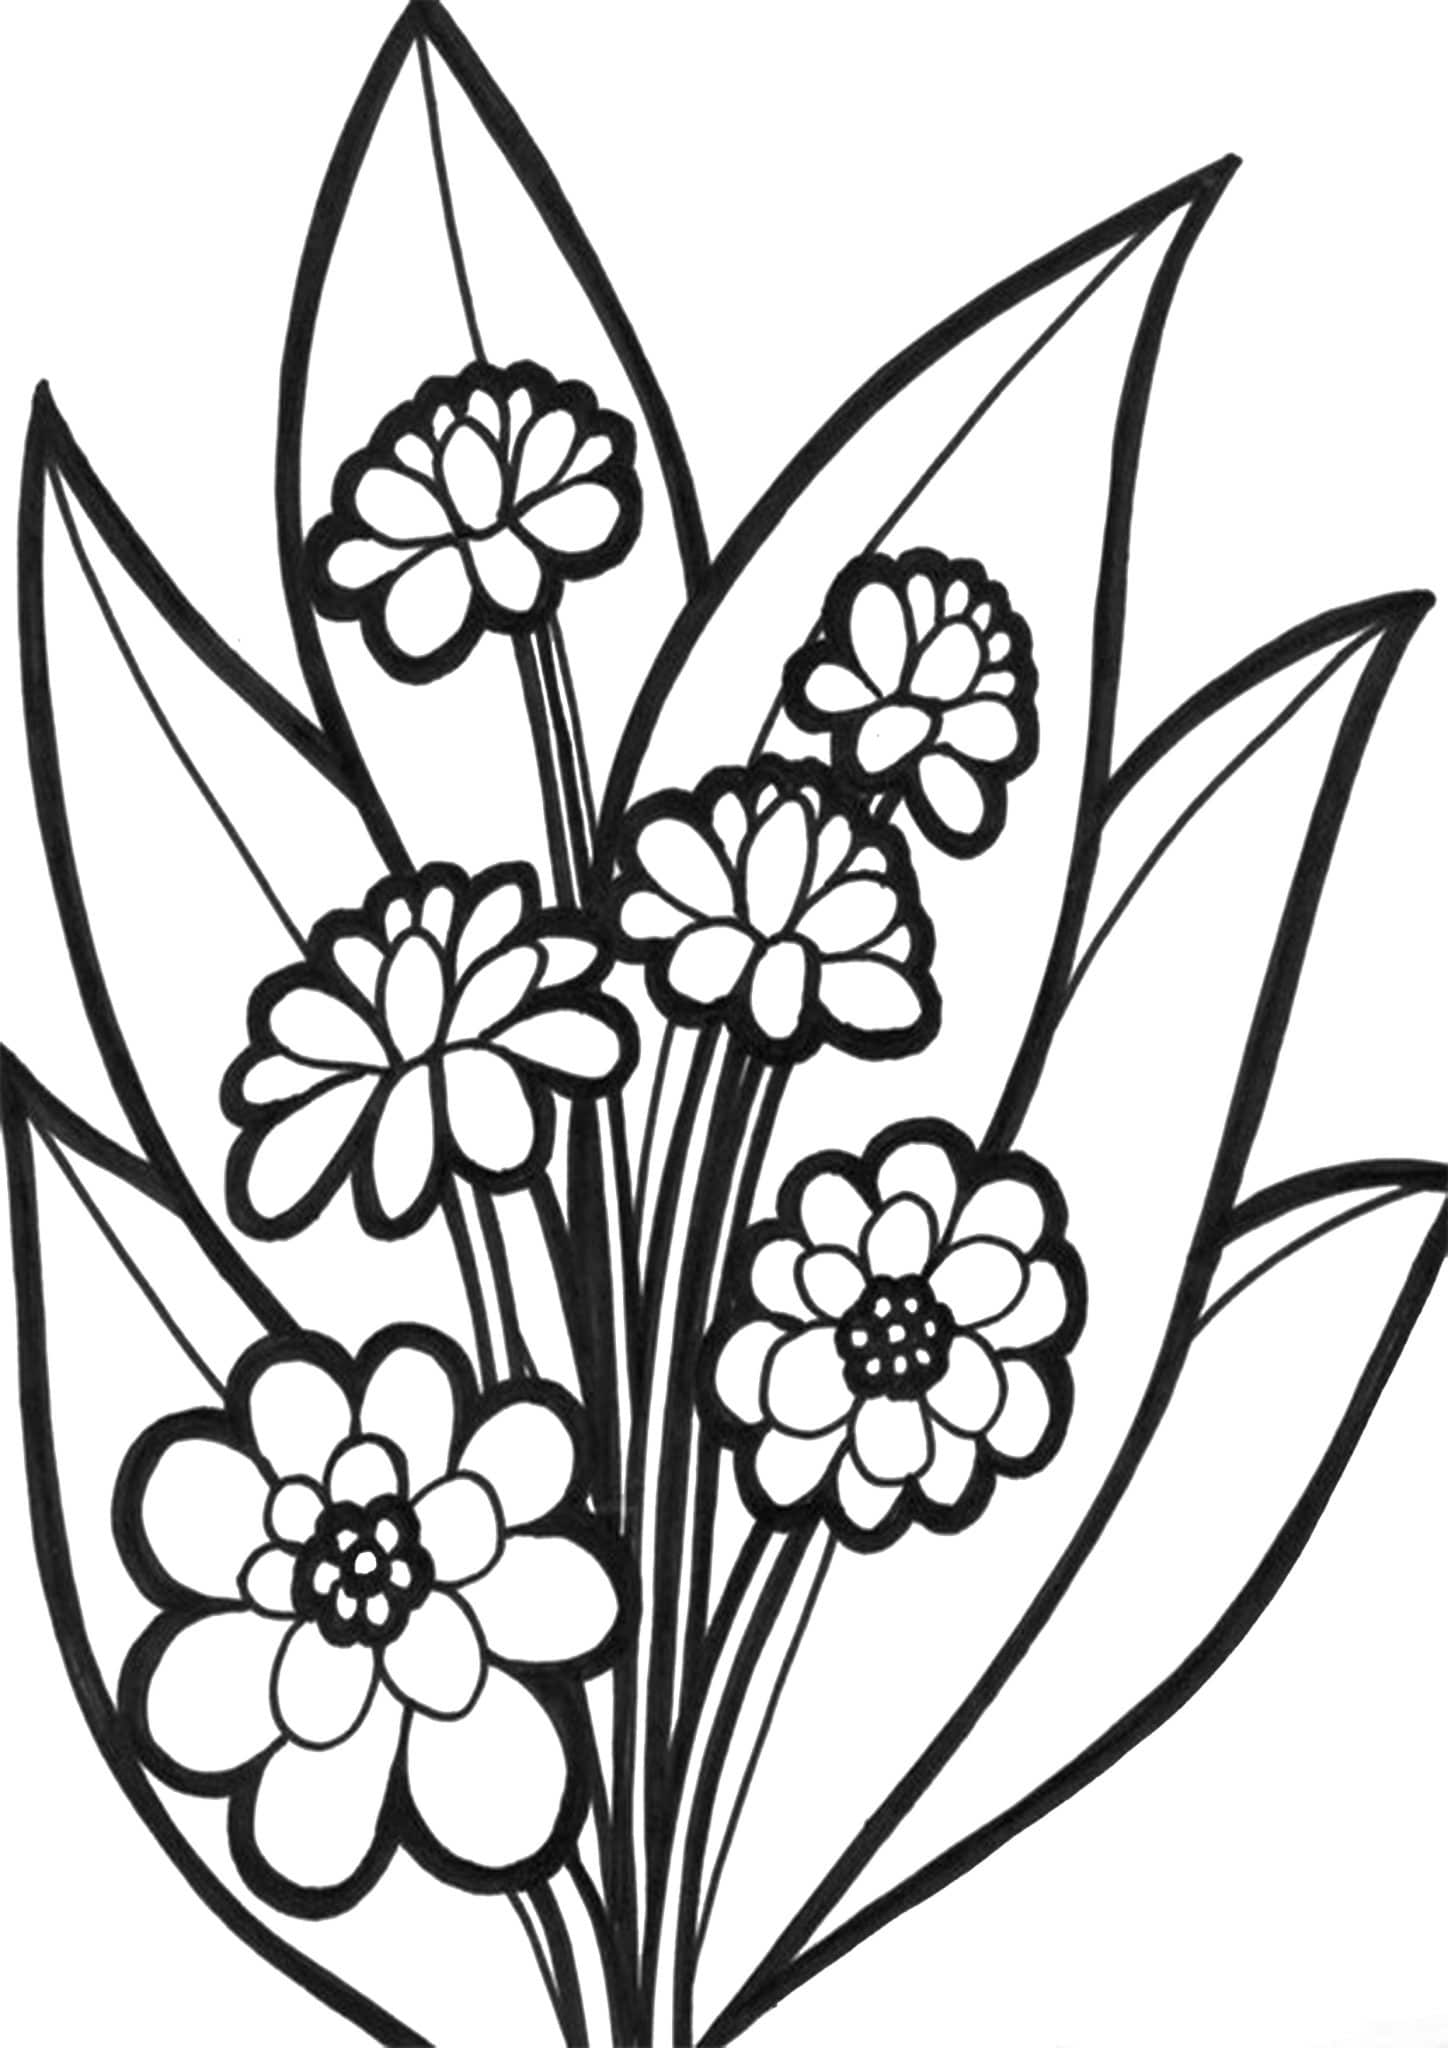 coloring pages flowers free easy to print flower coloring pages tulamama coloring flowers pages